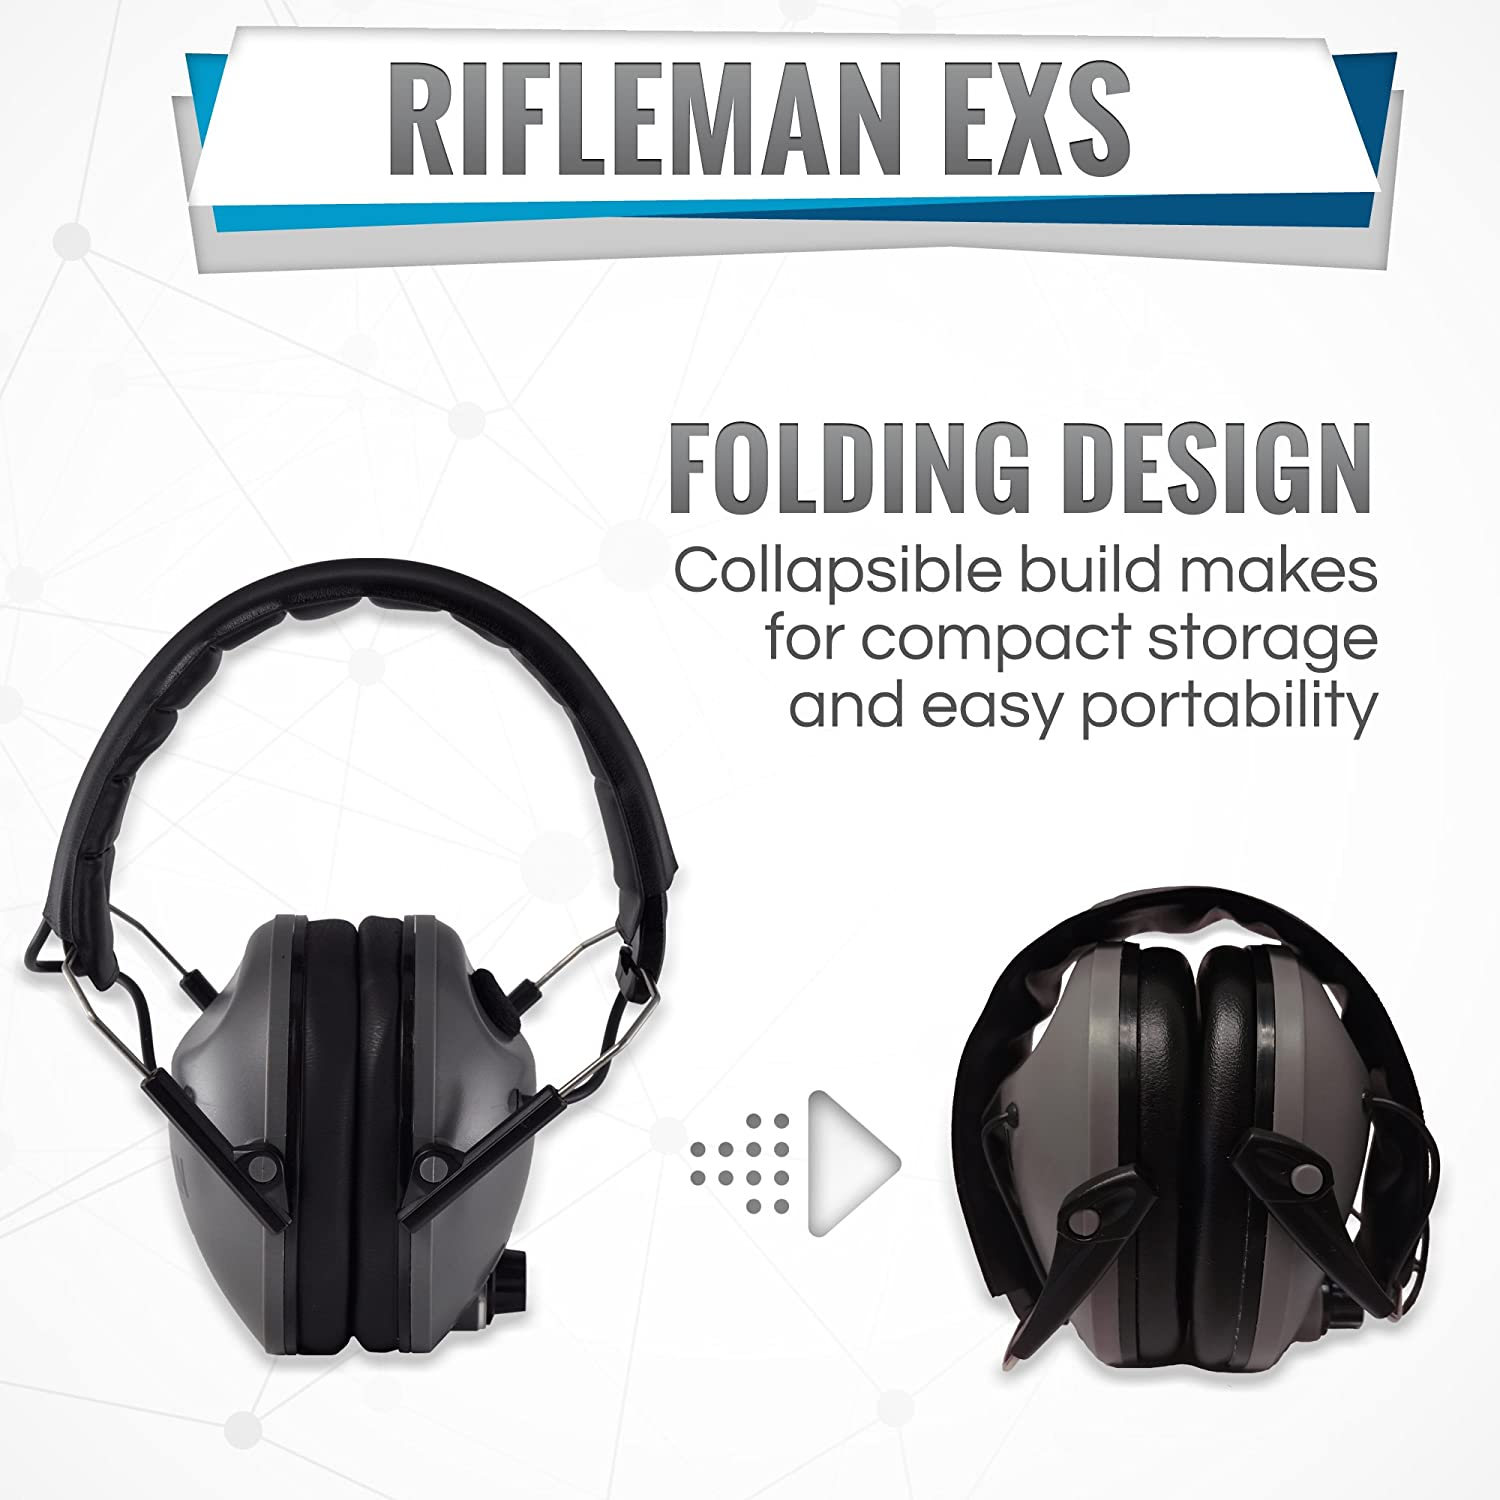 Rifleman Exs Electronic Hearing Protection For Shooting How To Build Amplified Ear Adjustable Folding Low Profile Design Hunting Enhancement Aids Sports